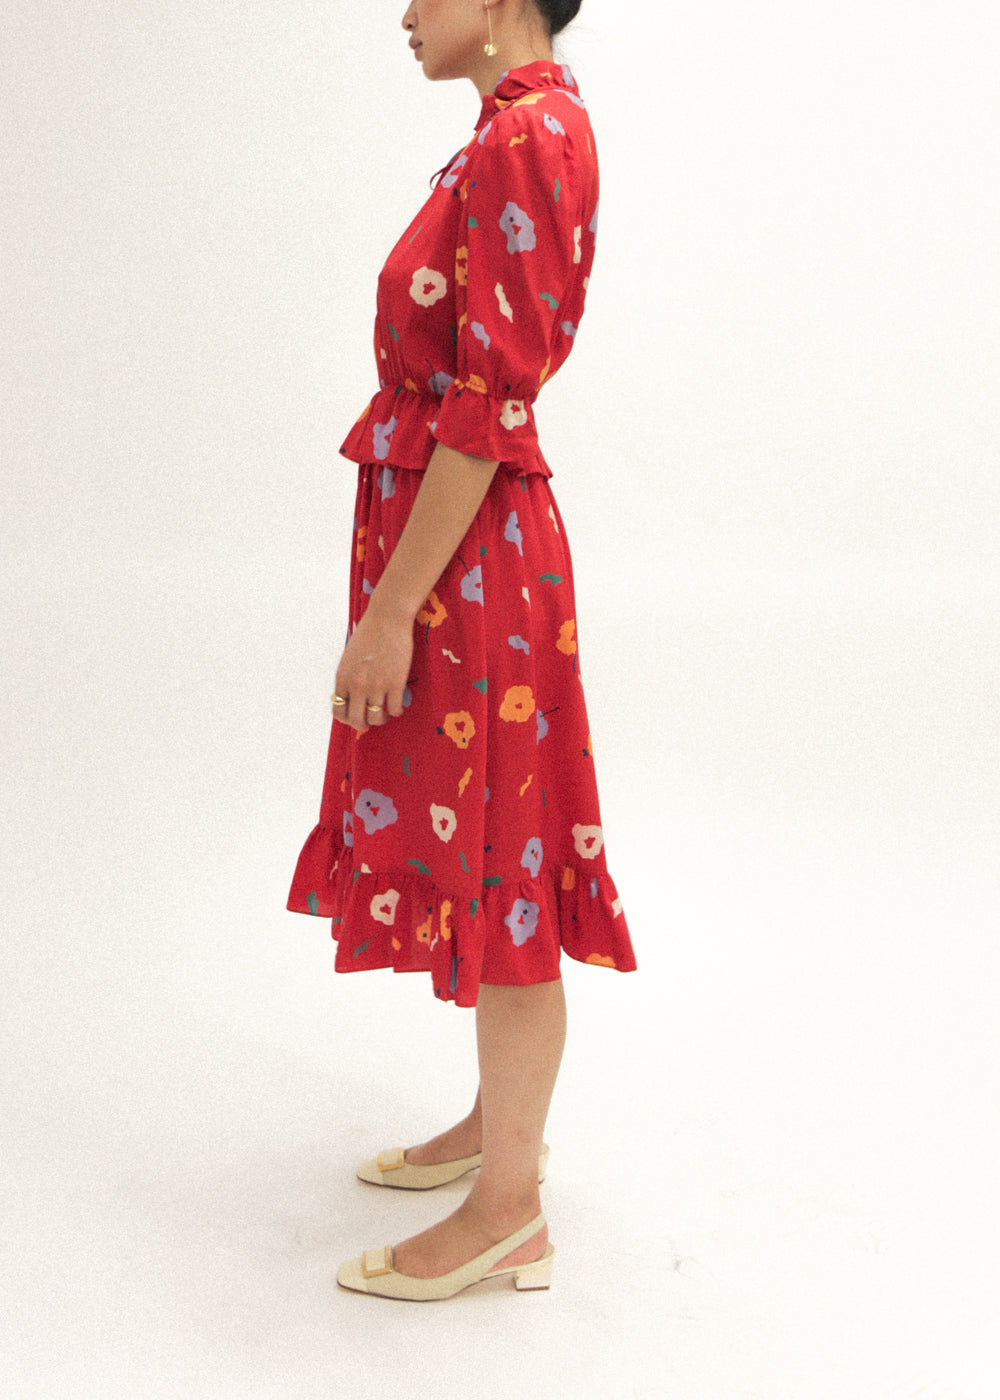 Pre by New Classics Vintage Floral Ruffle Dress — Shop sustainable fashion and slow fashion at New Classics Studios